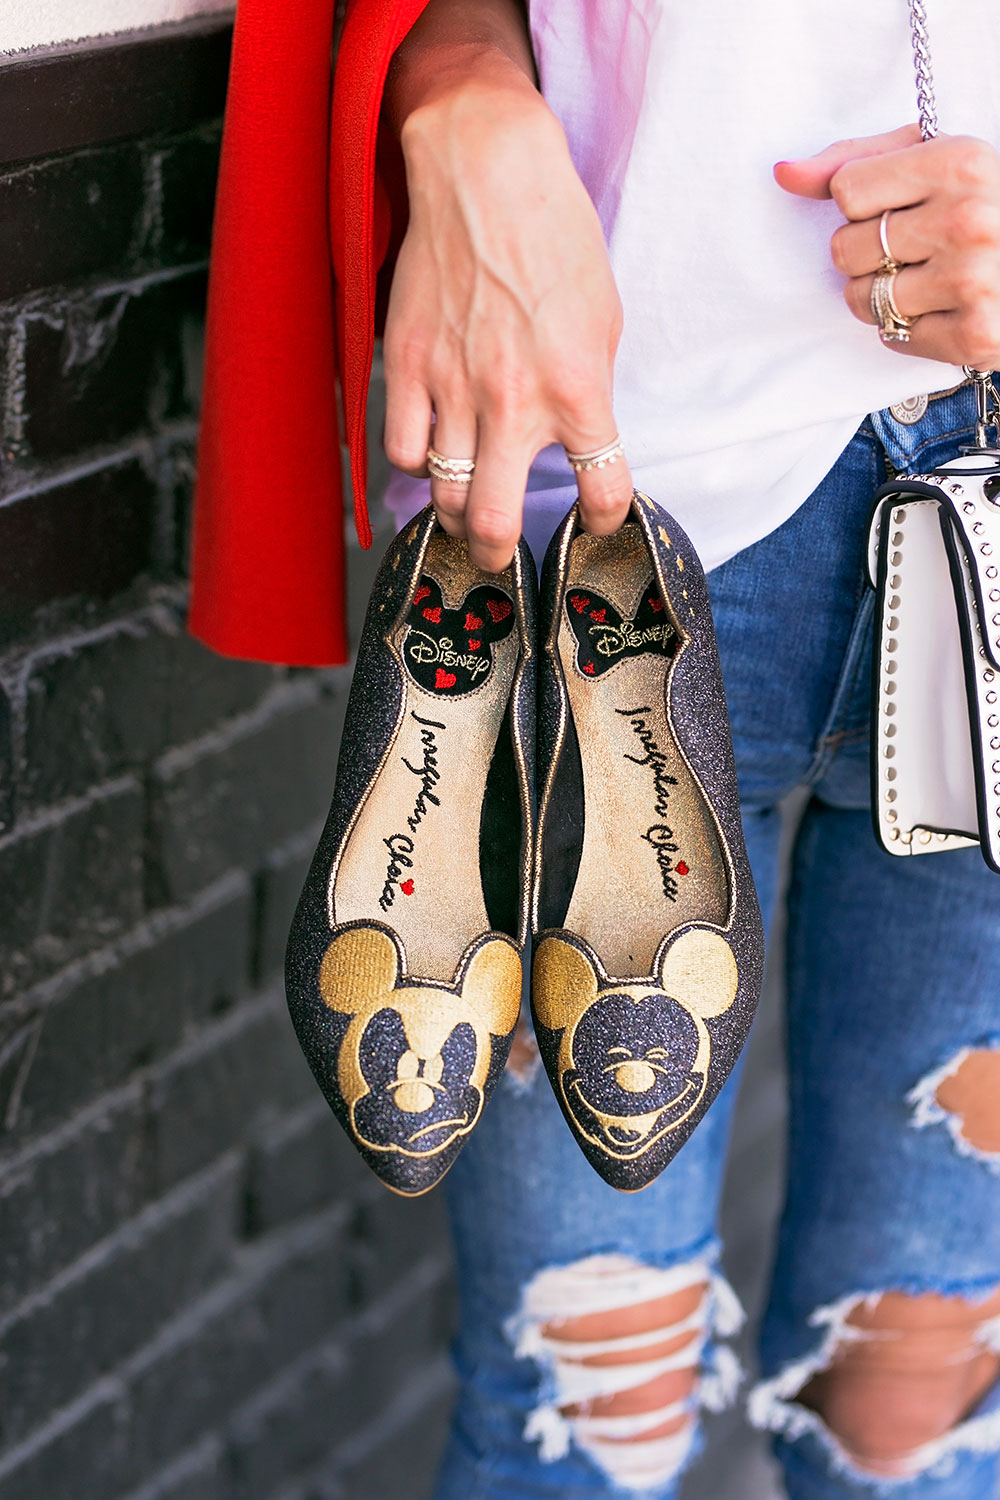 mickey mouse pumps